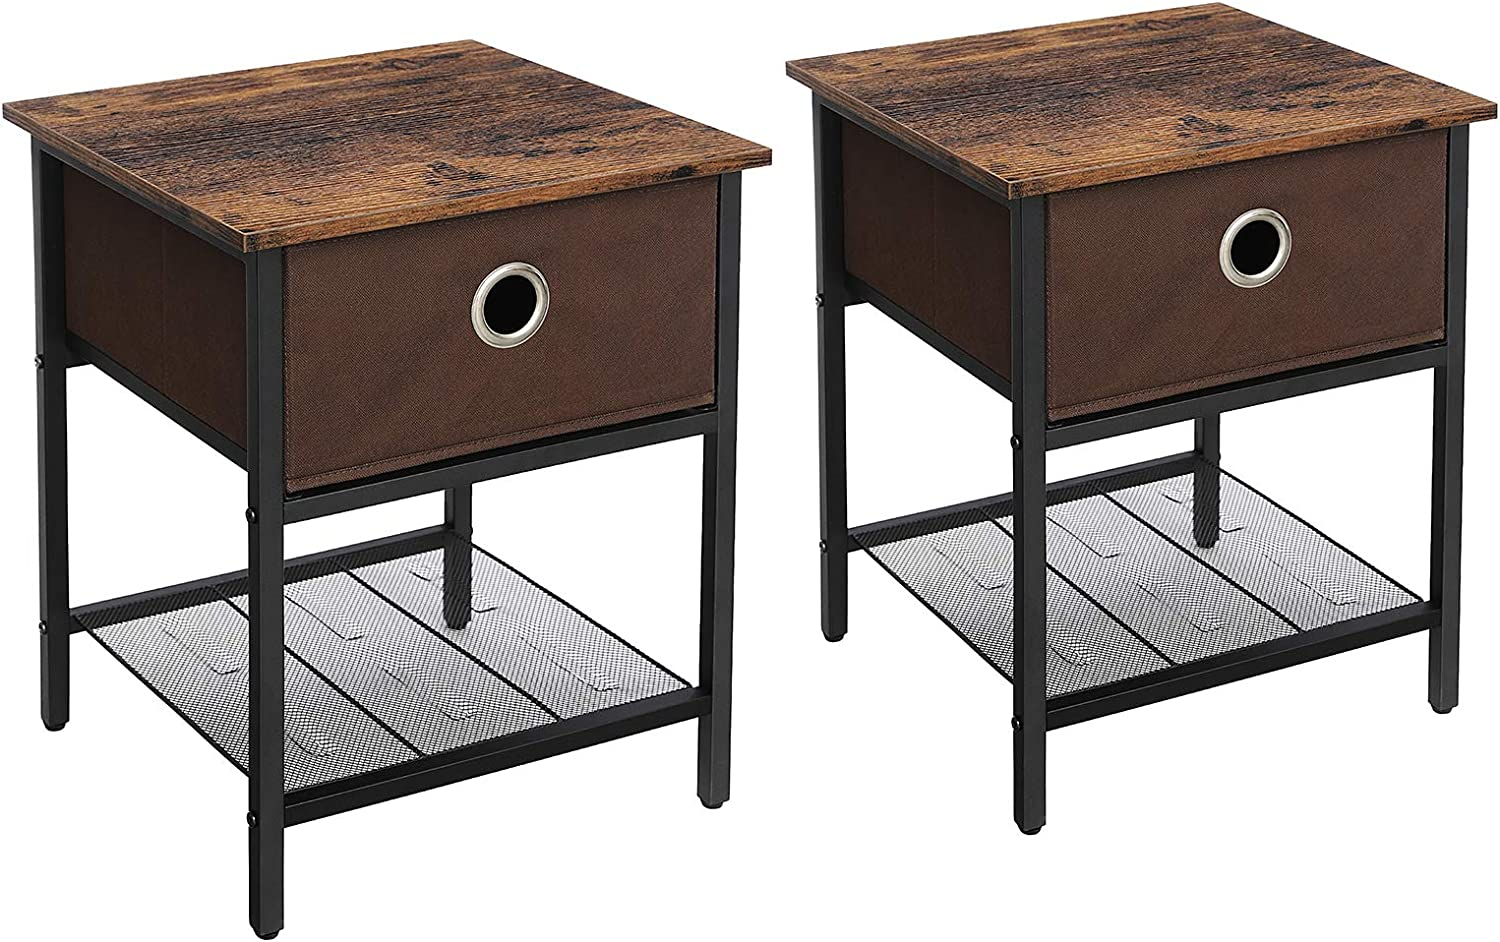 VASAGLE INDESTIC End, Nightstand Side Table with Steel Frame, Living Room Bedroom, Easy Assembly, 2-Pack, Rustic Brown, Black